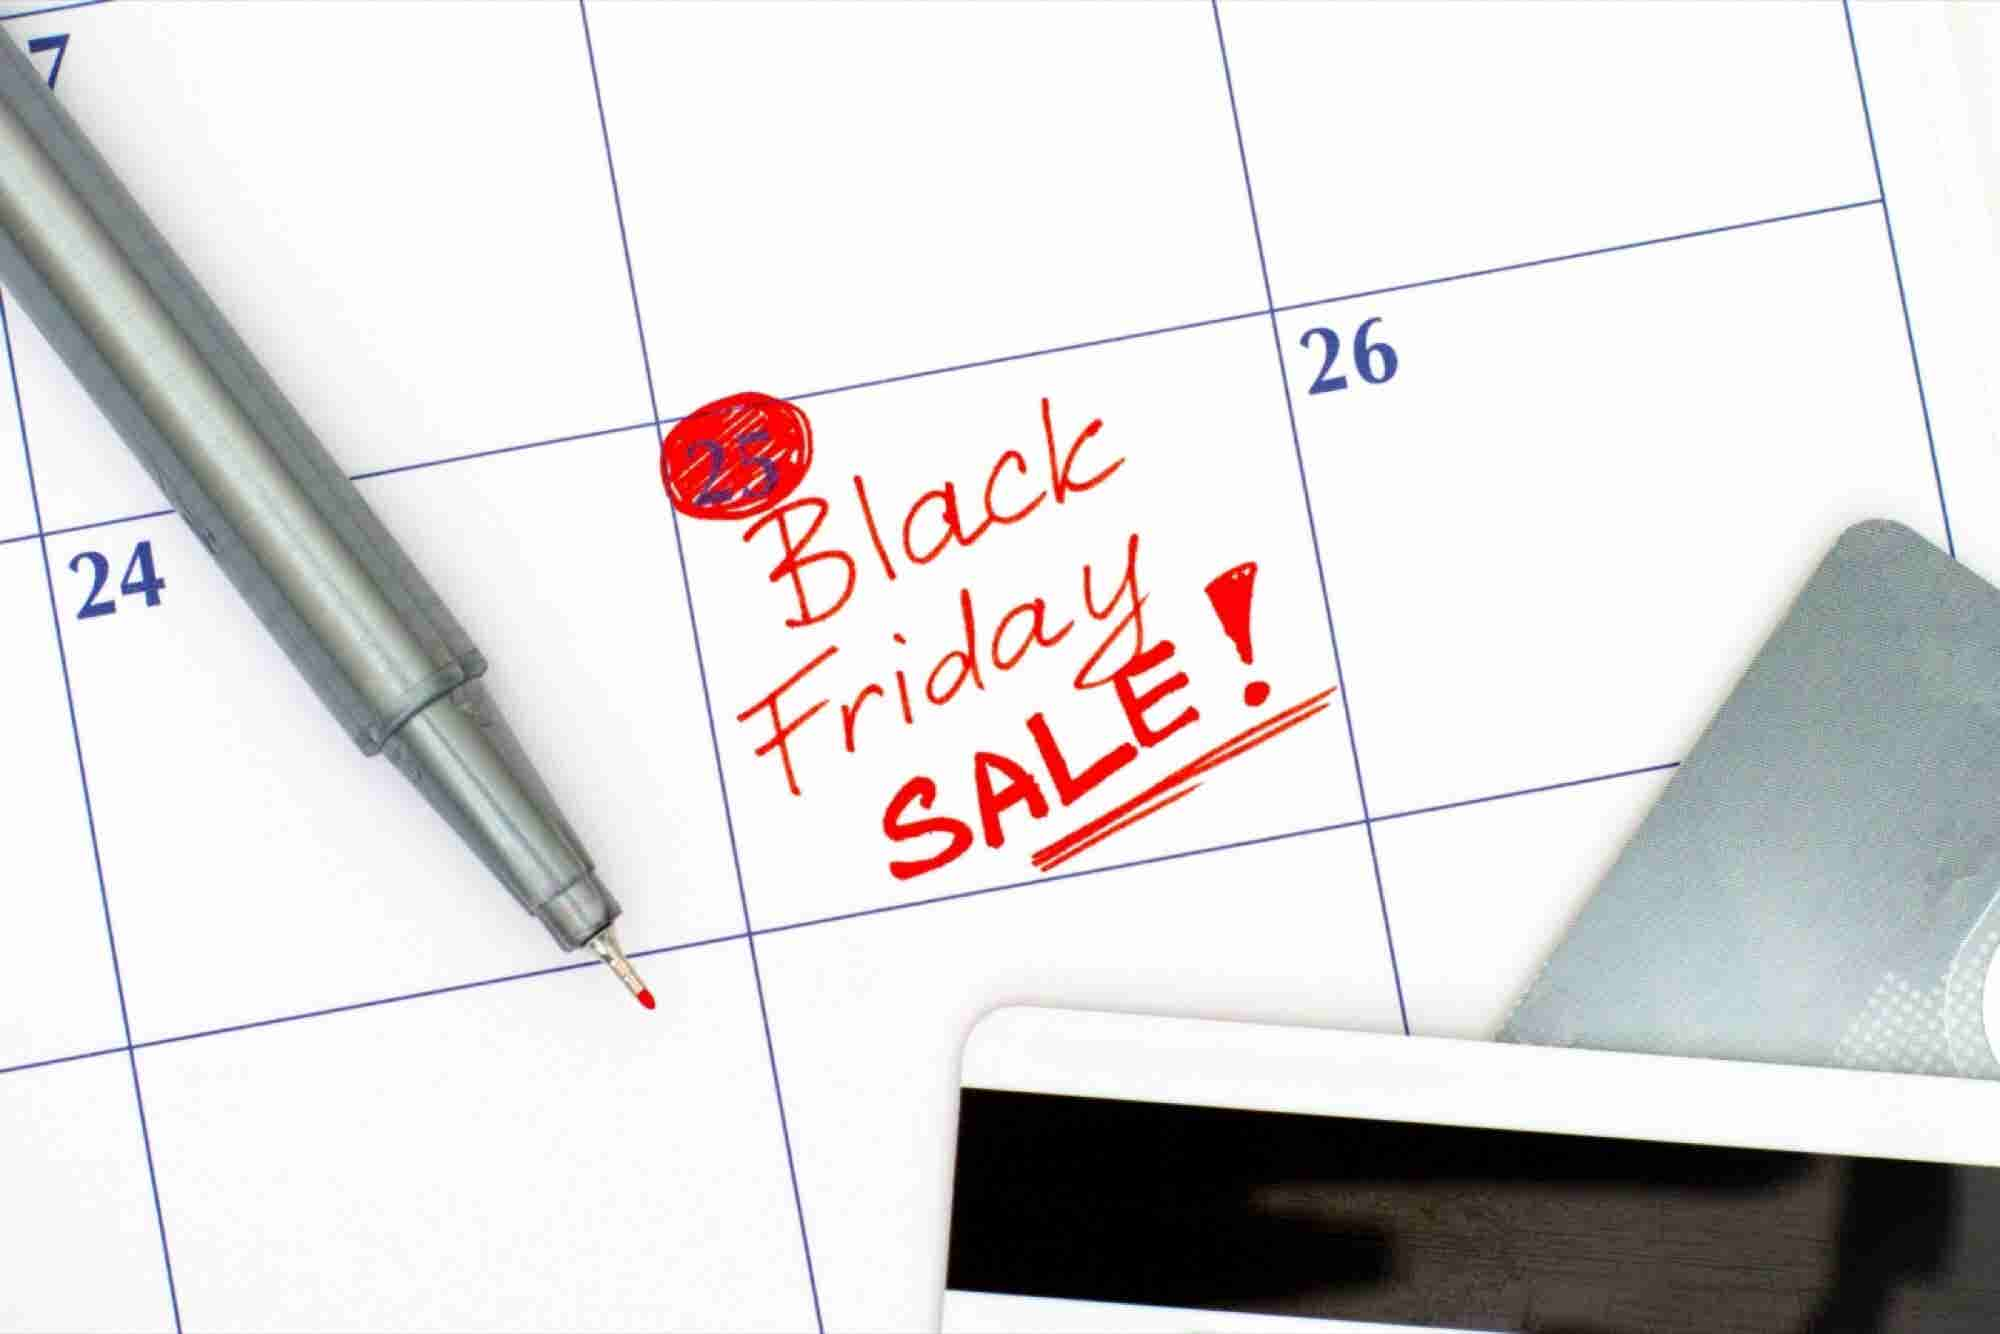 The Best Black Friday Deals of 2016